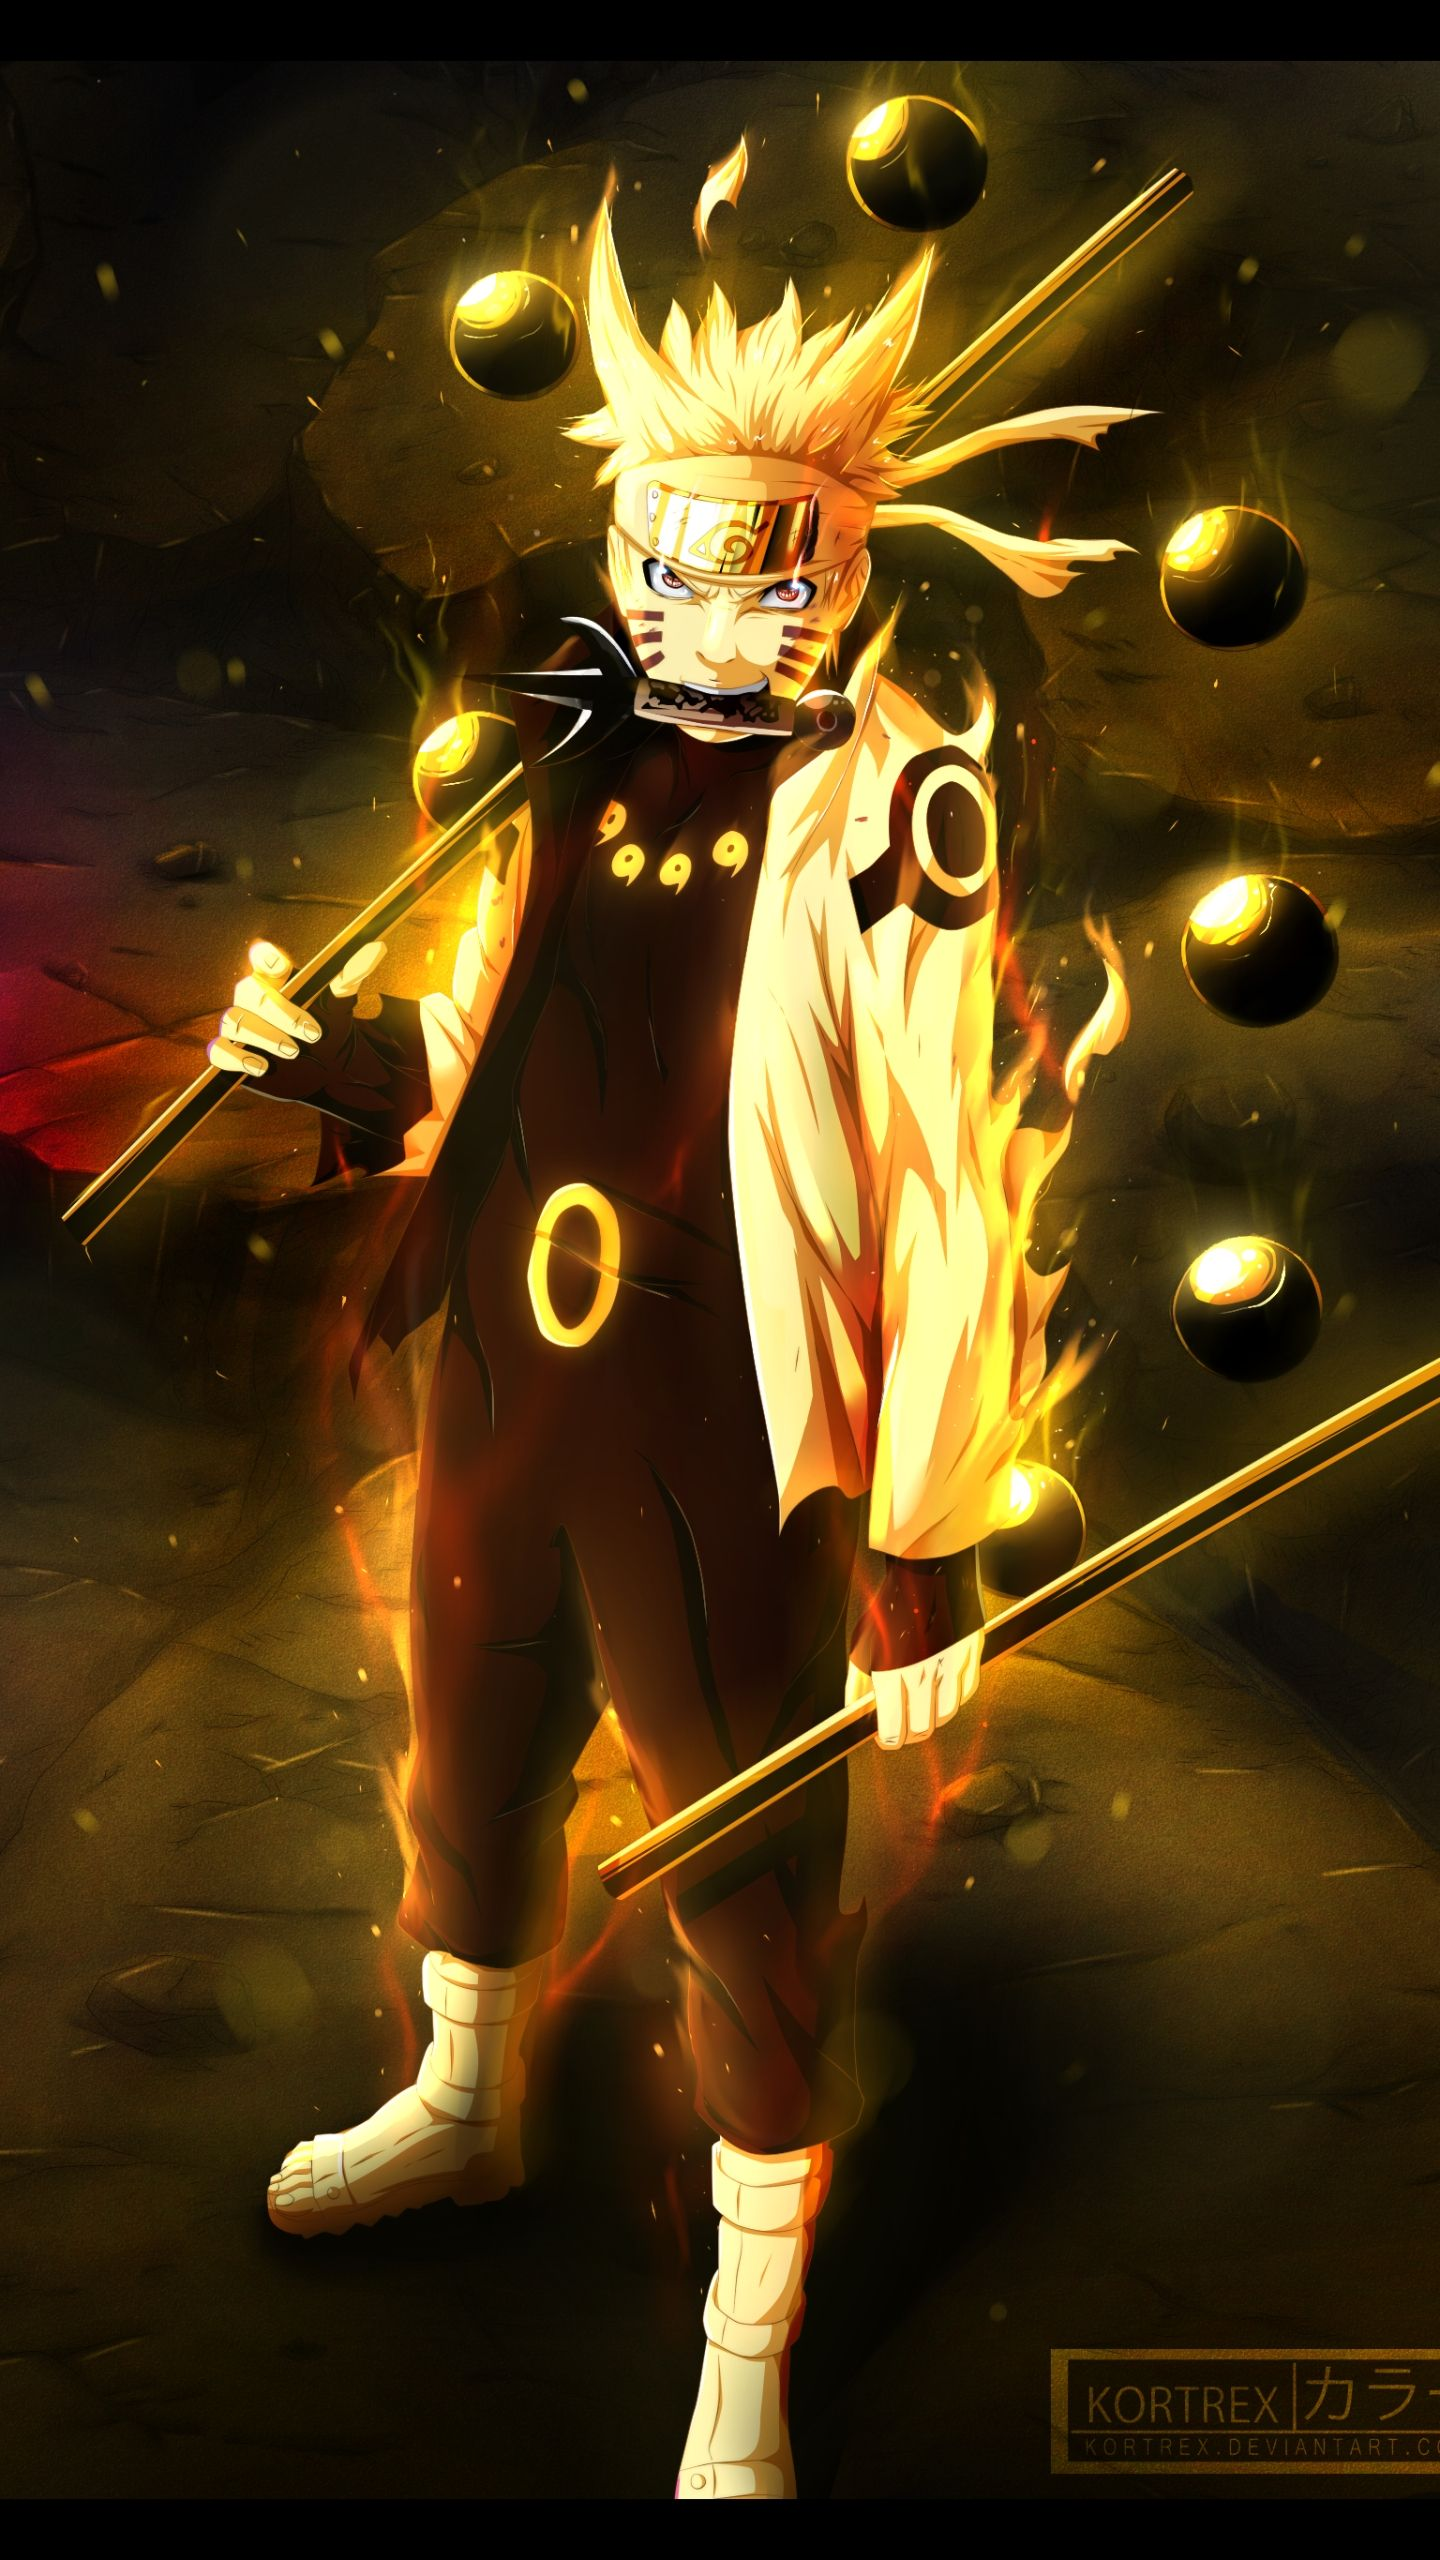 Naruto Wallpaper Iphone 6 Download Best Naruto Wallpaper